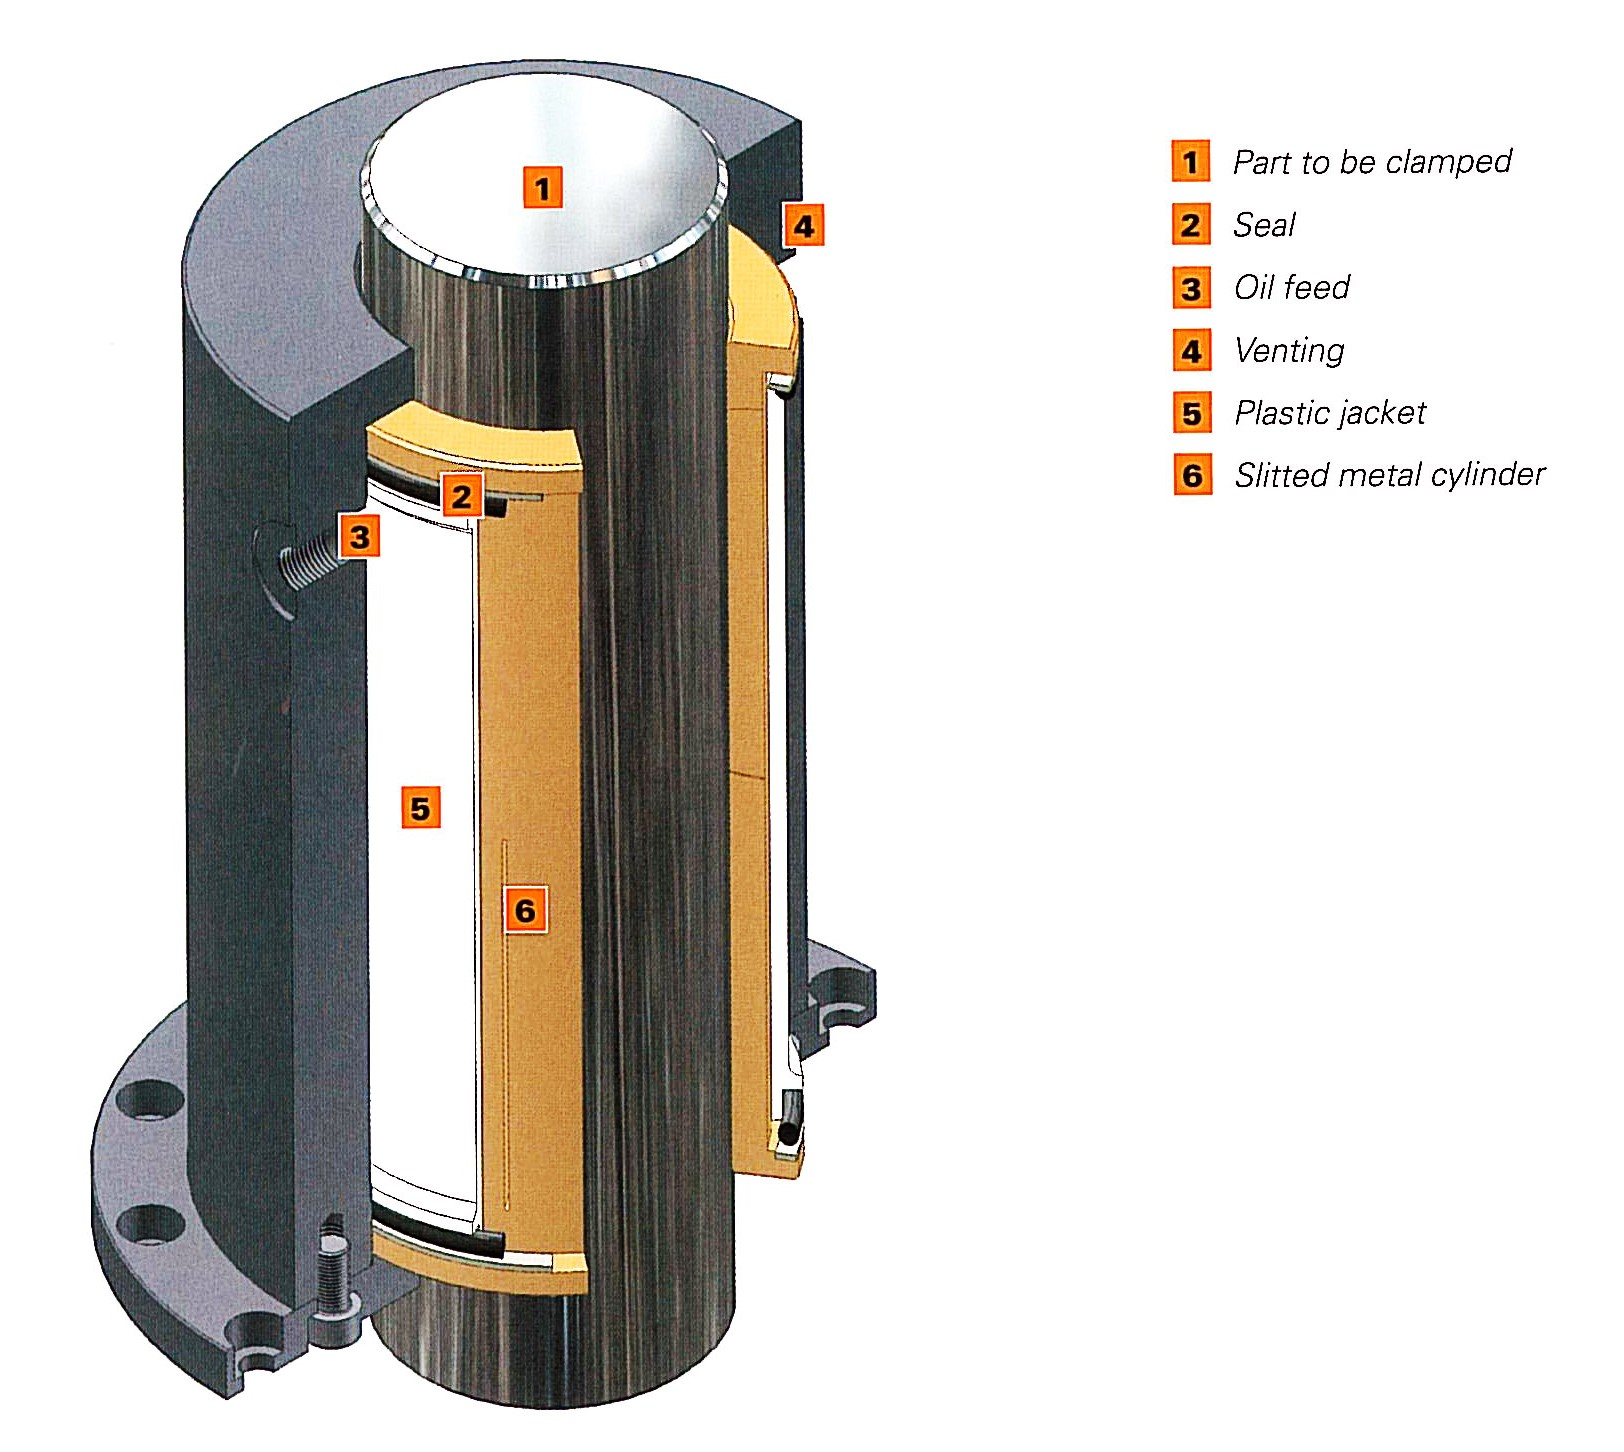 Clamping sleeves engineered to support machine tool